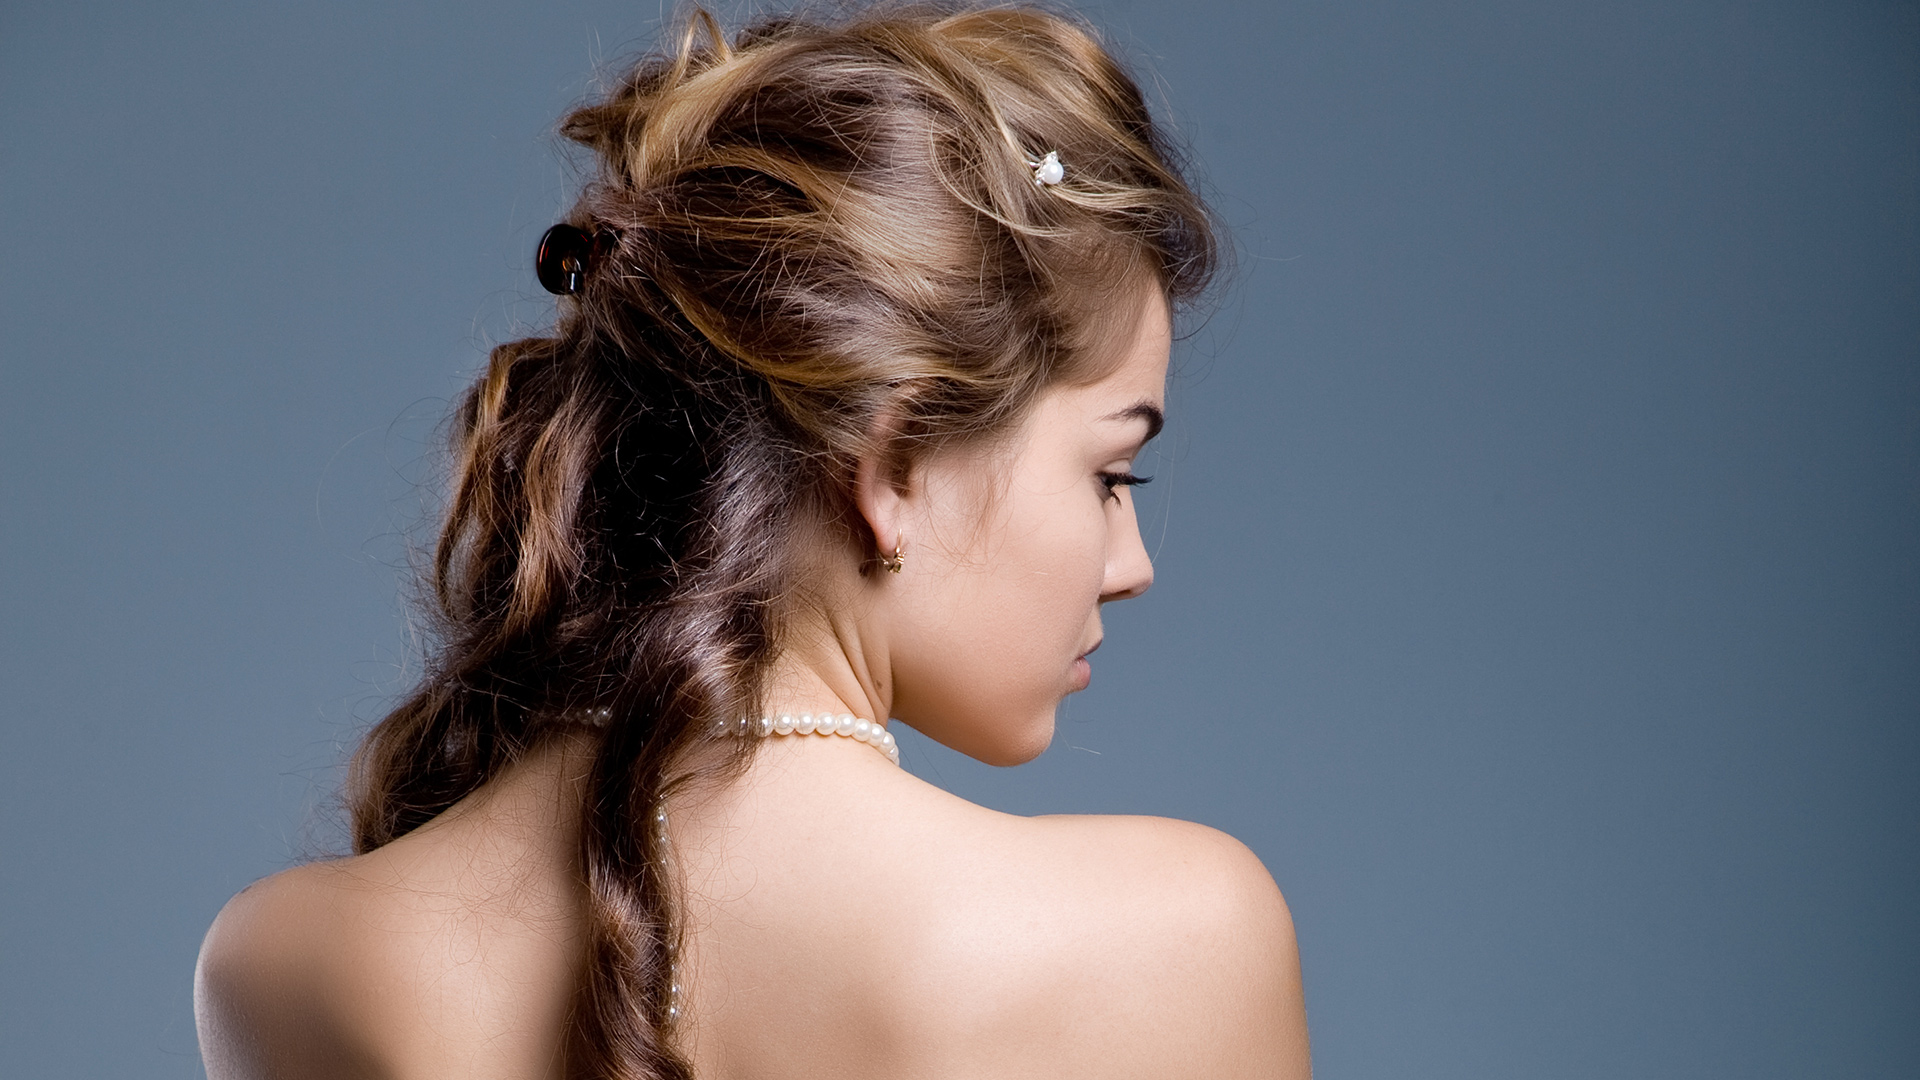 hd-wallpapers-wedding-hairstyles